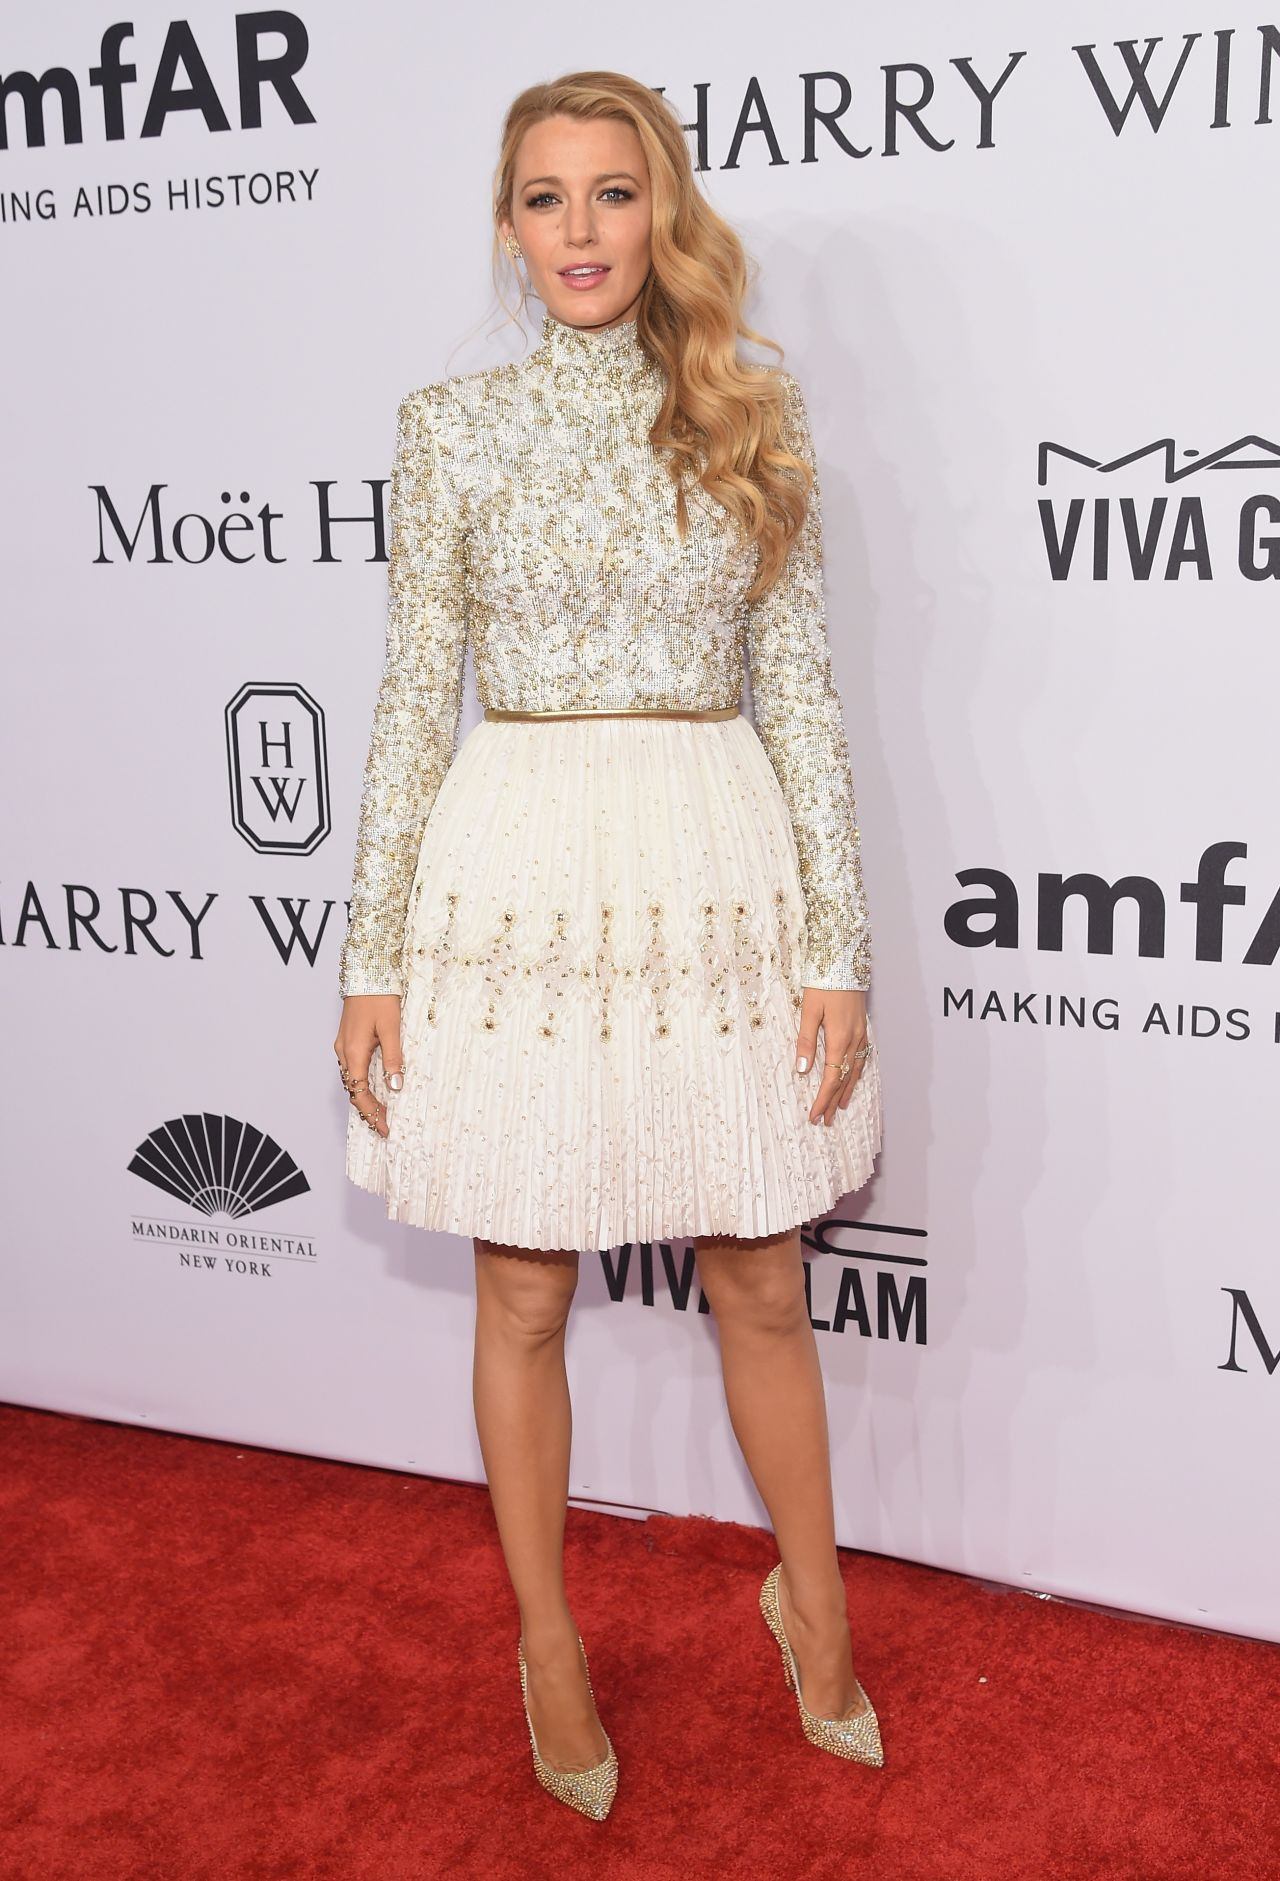 blake-lively-2016-amfar-new-york-gala-in-new-york-city-ny-1